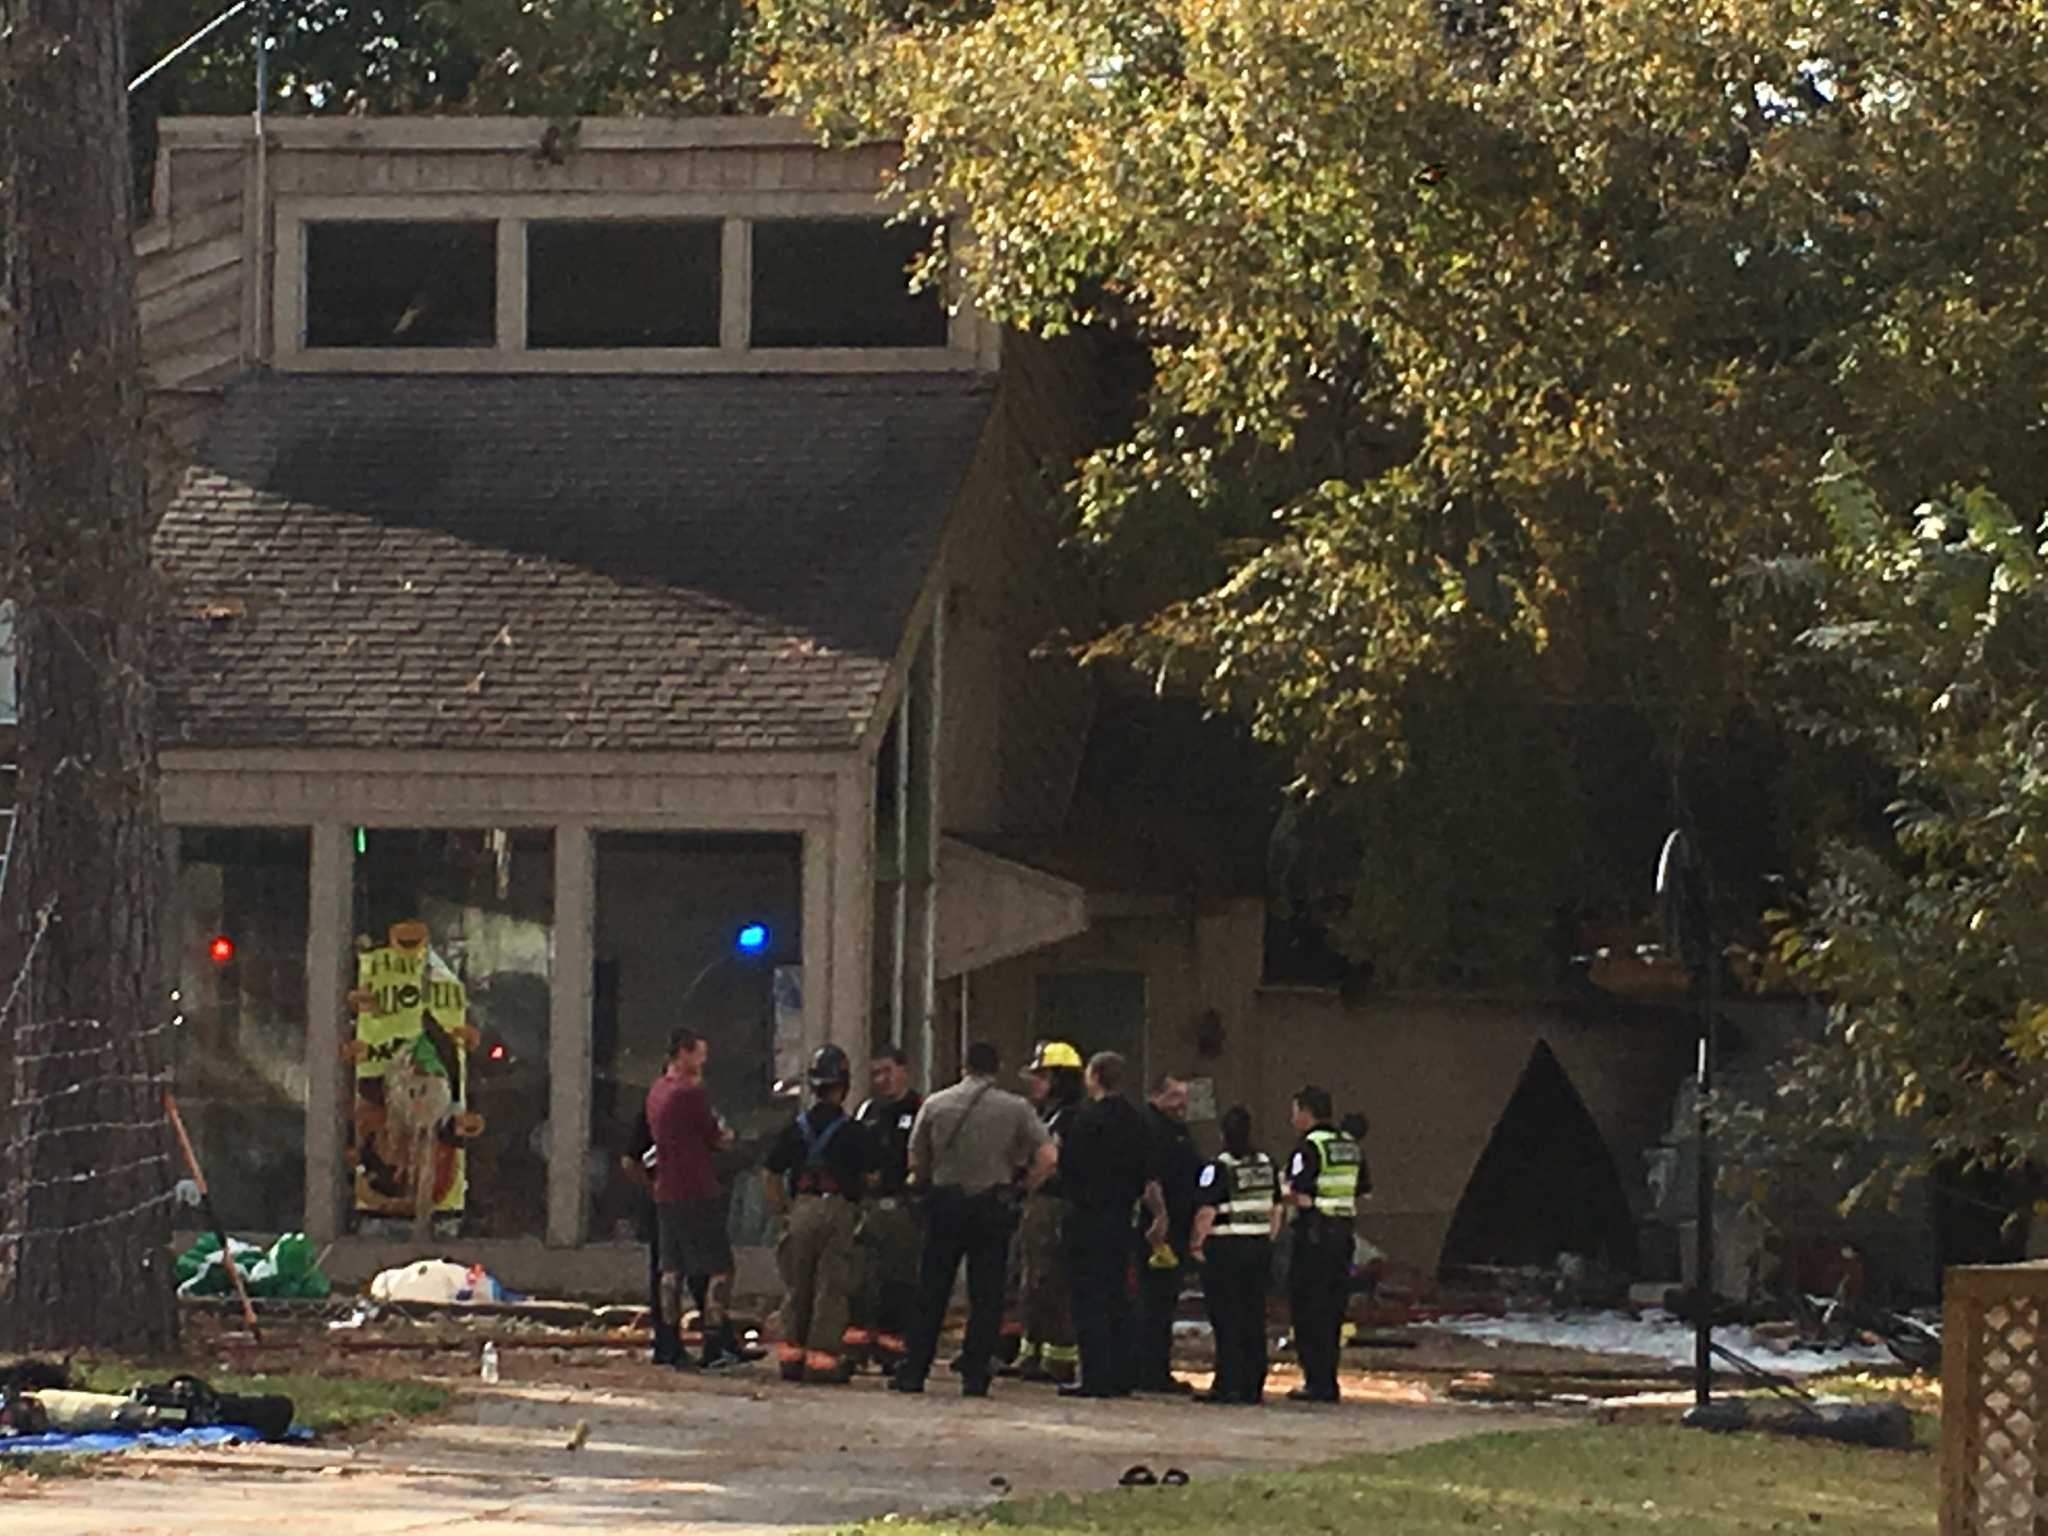 meagan home office. improper disposal of fire pit ash ignites twostory house in willis the courier meagan home office